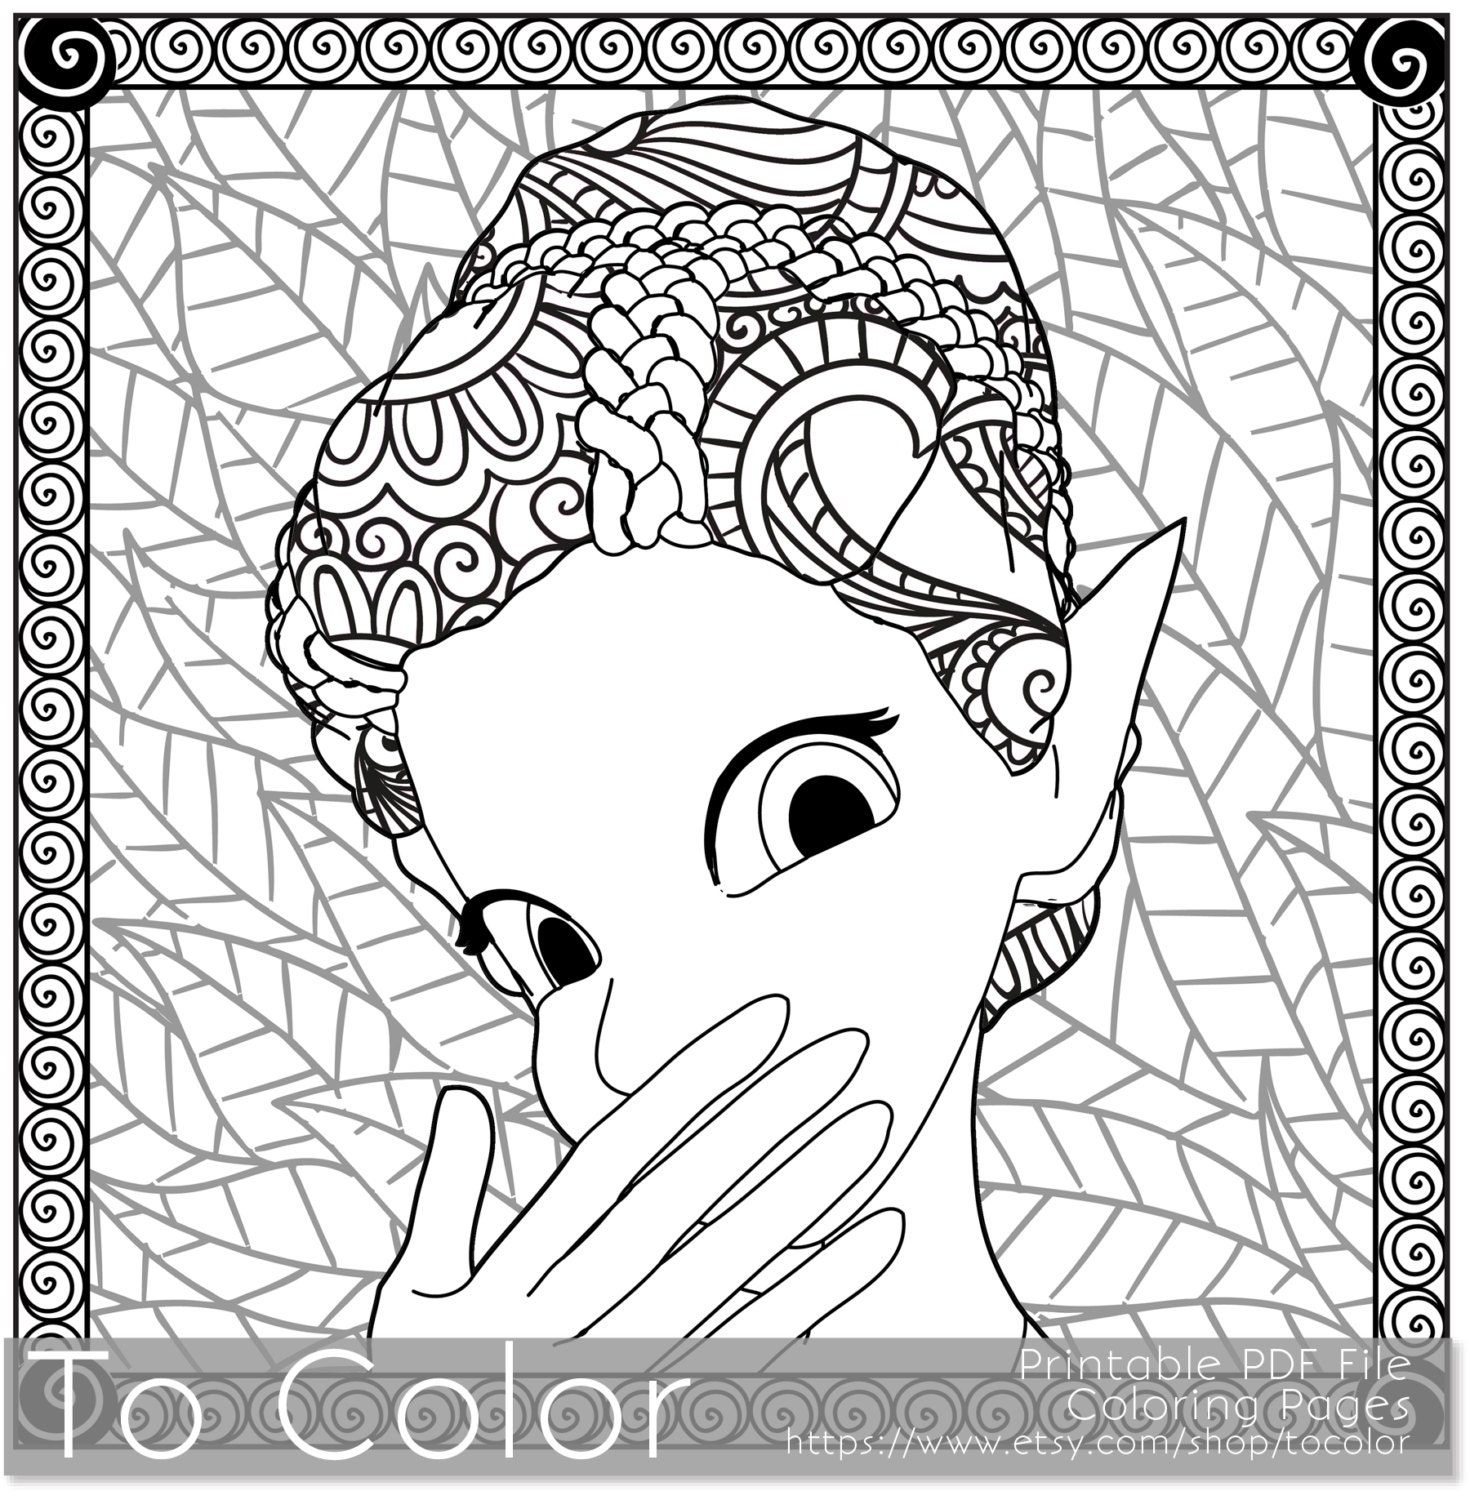 Coloring pages for adults fantasy coloring pdf jpg by for Coloring pages adults pdf